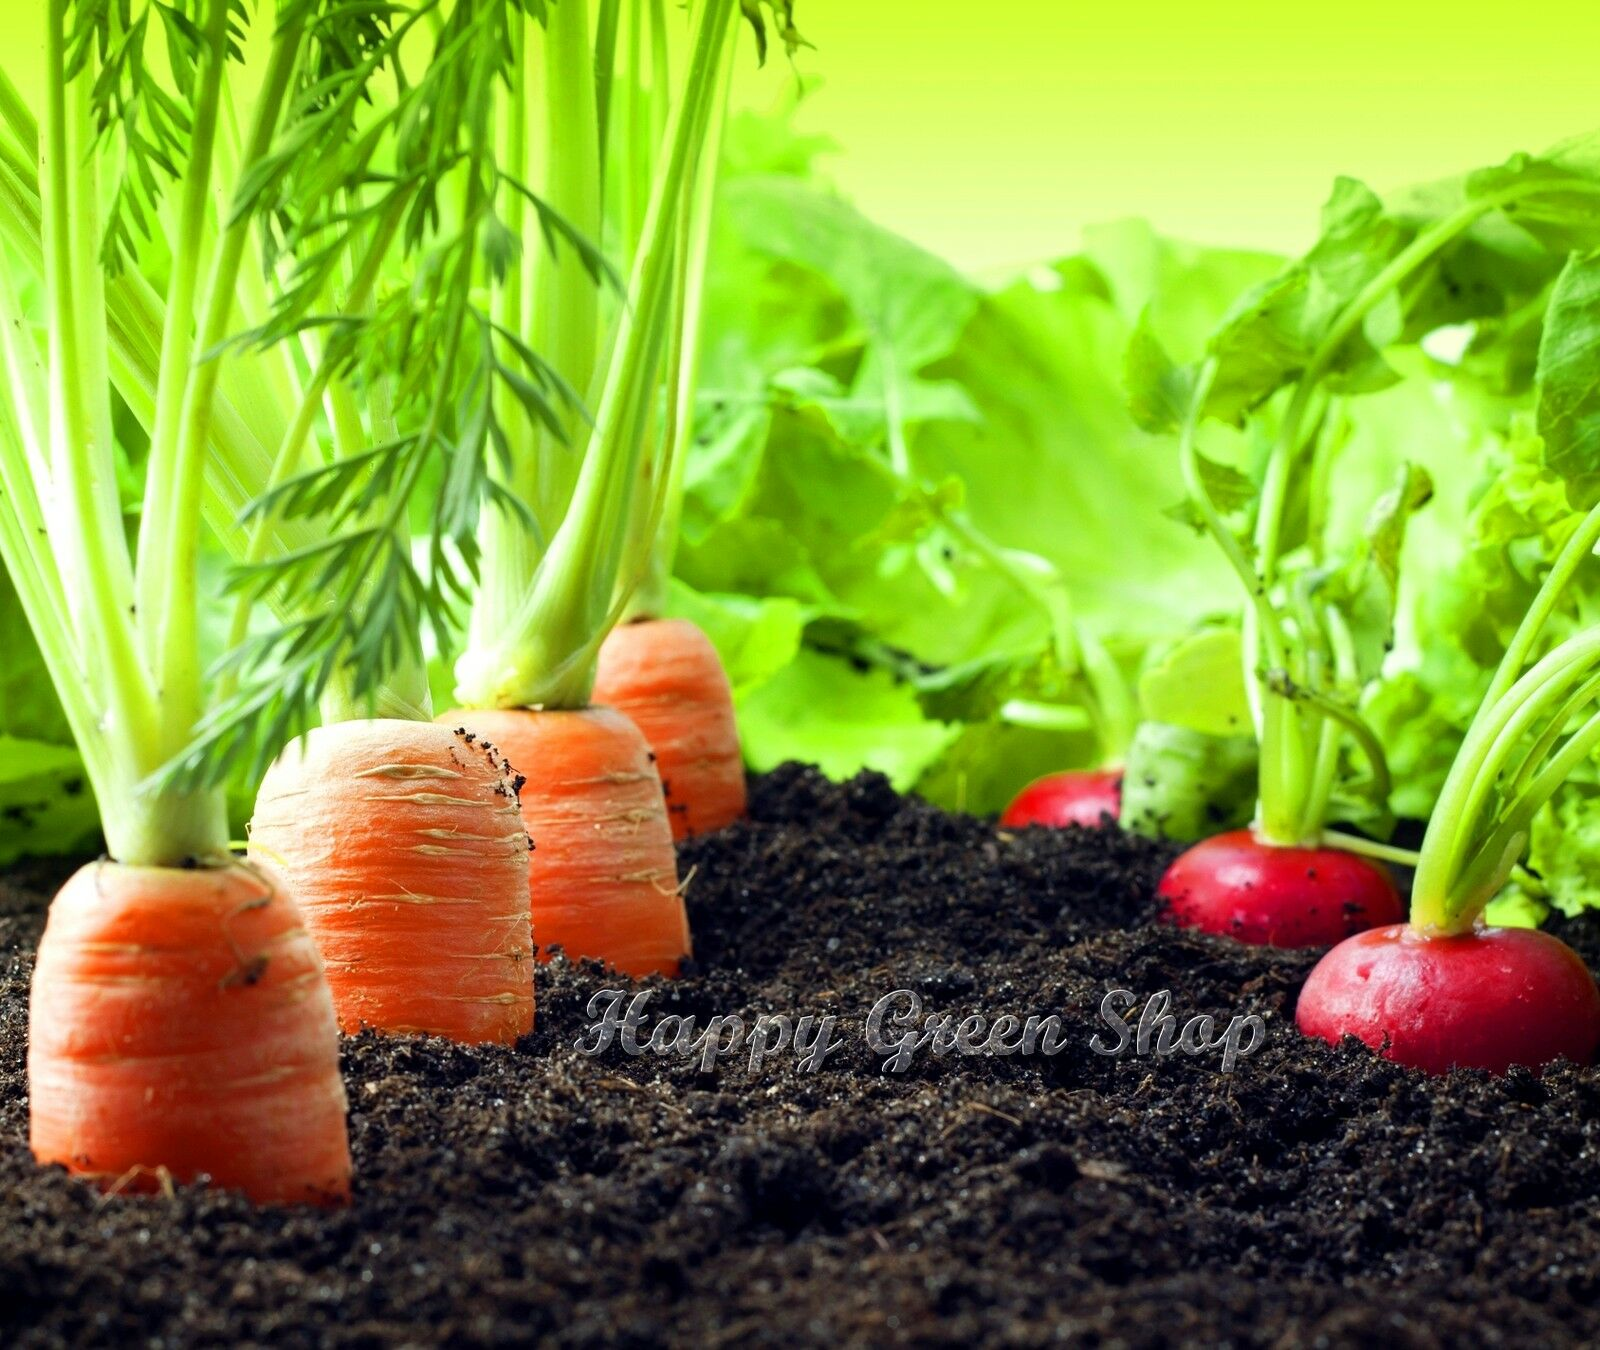 5 Mtr Seed Tape 1 Packet Carrot Beetroot Broccoli Vegetable Collection Seeds